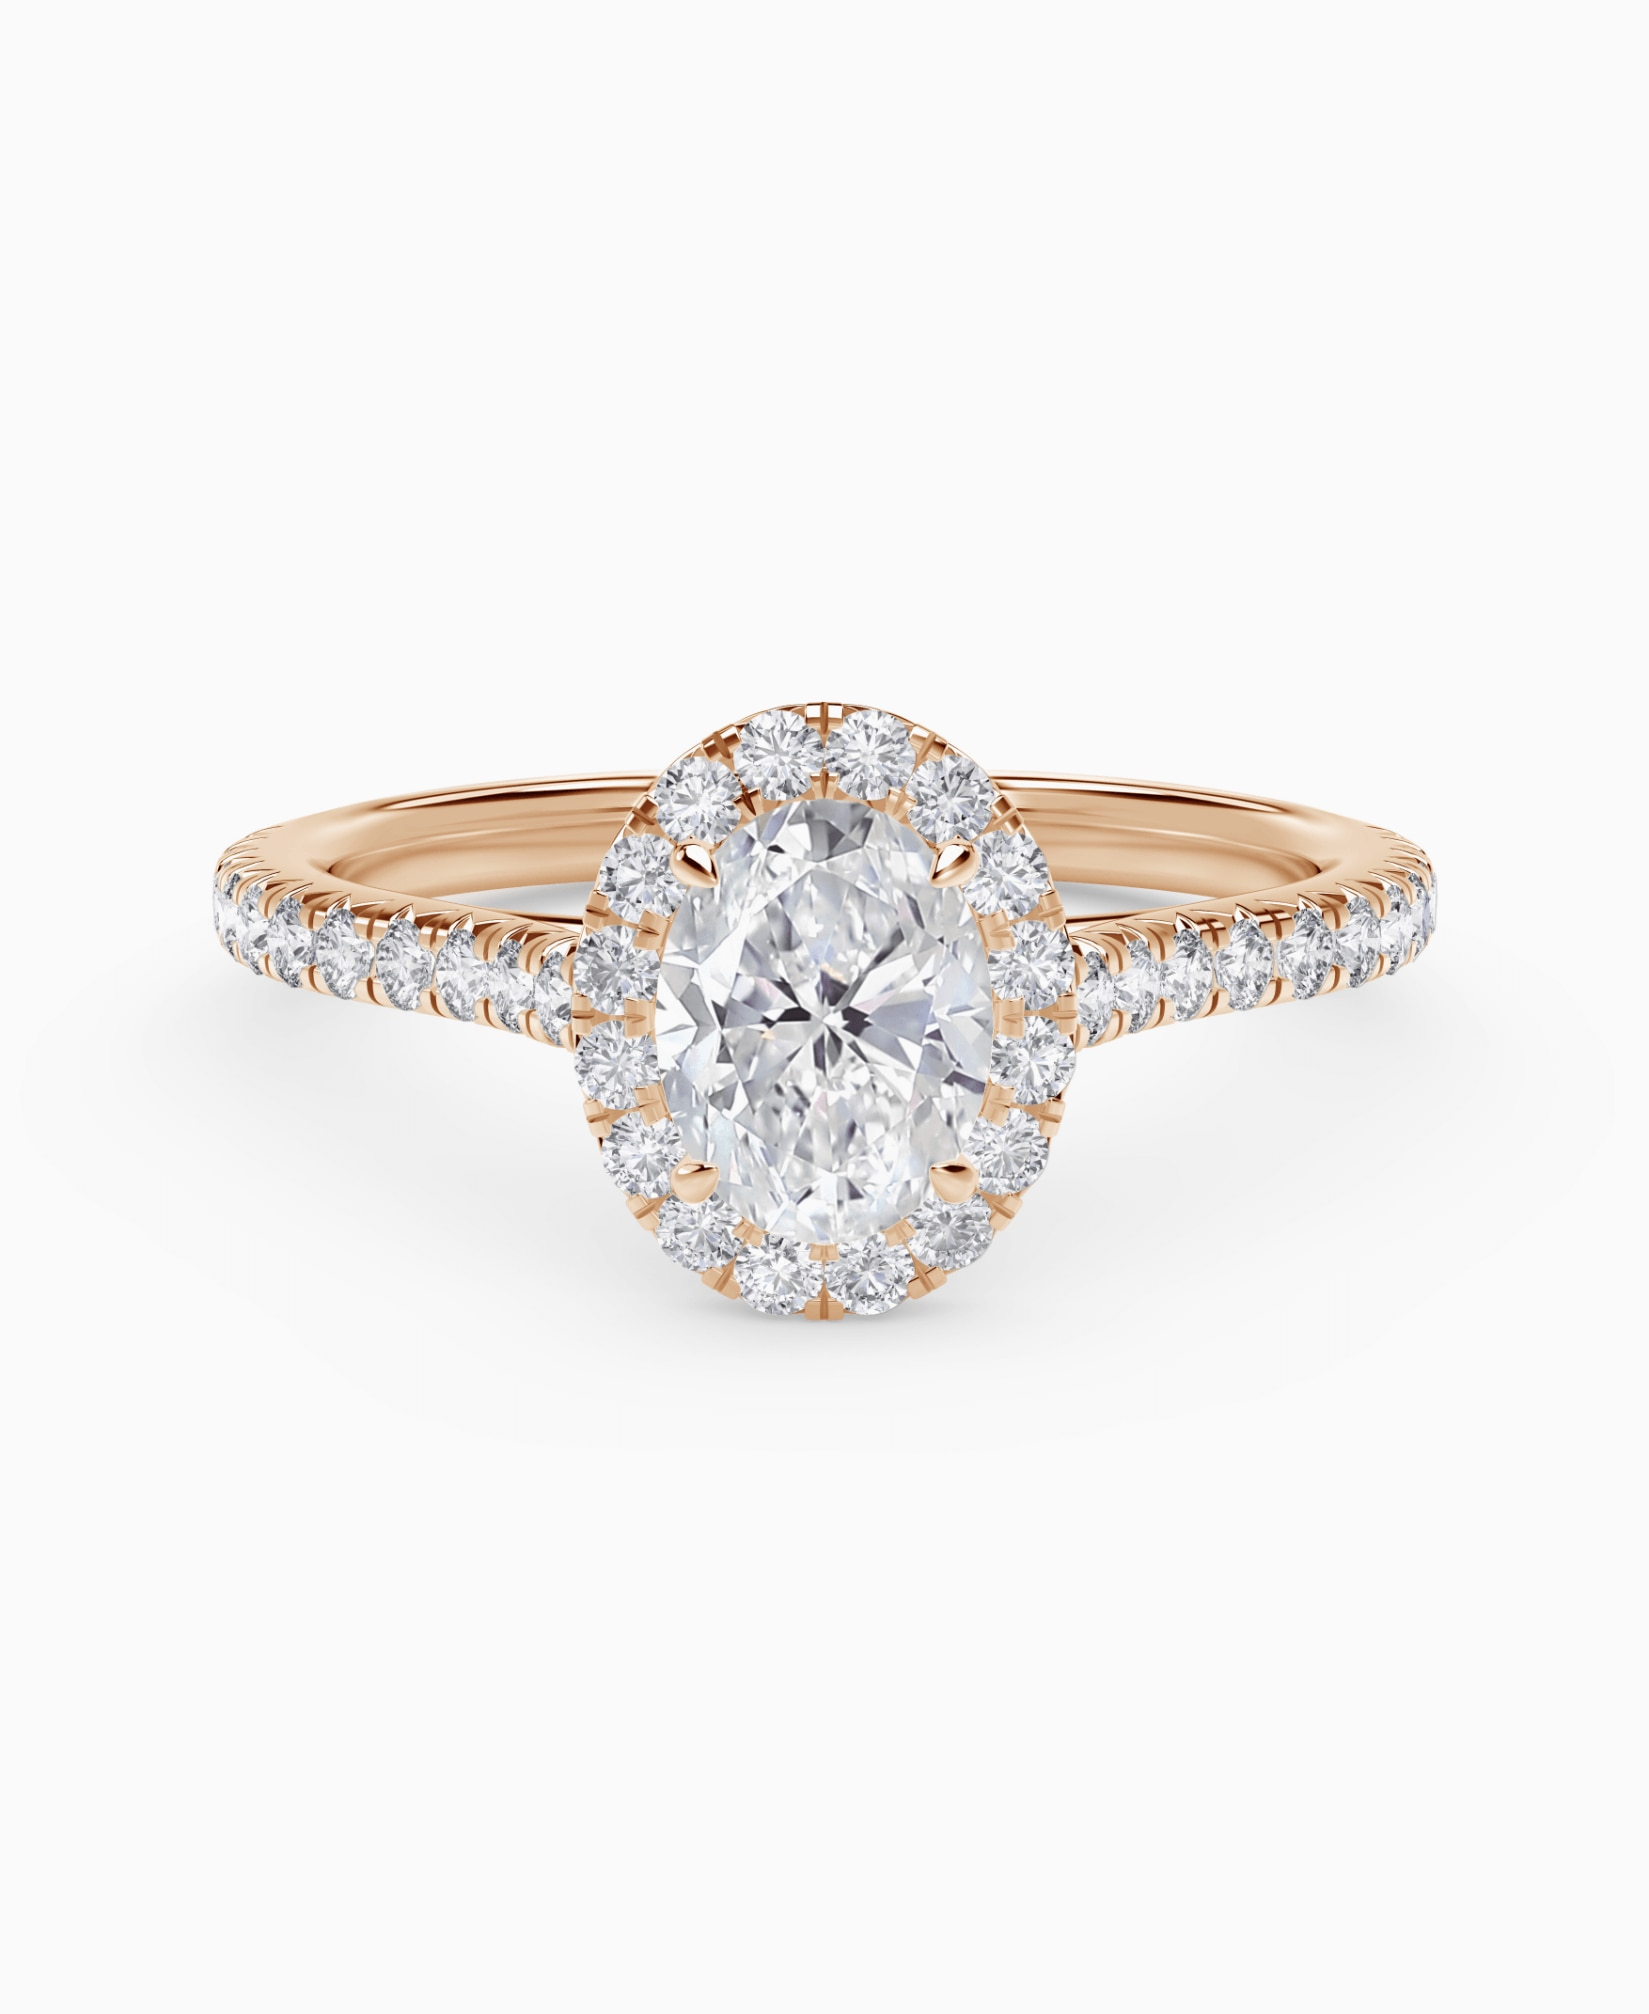 How To Find A Ring Based On Finger Shape And Size Forevermark Crowned with a glittering 1.25 ct moissanite stone, this heavenly ring also. ring based on finger shape and size